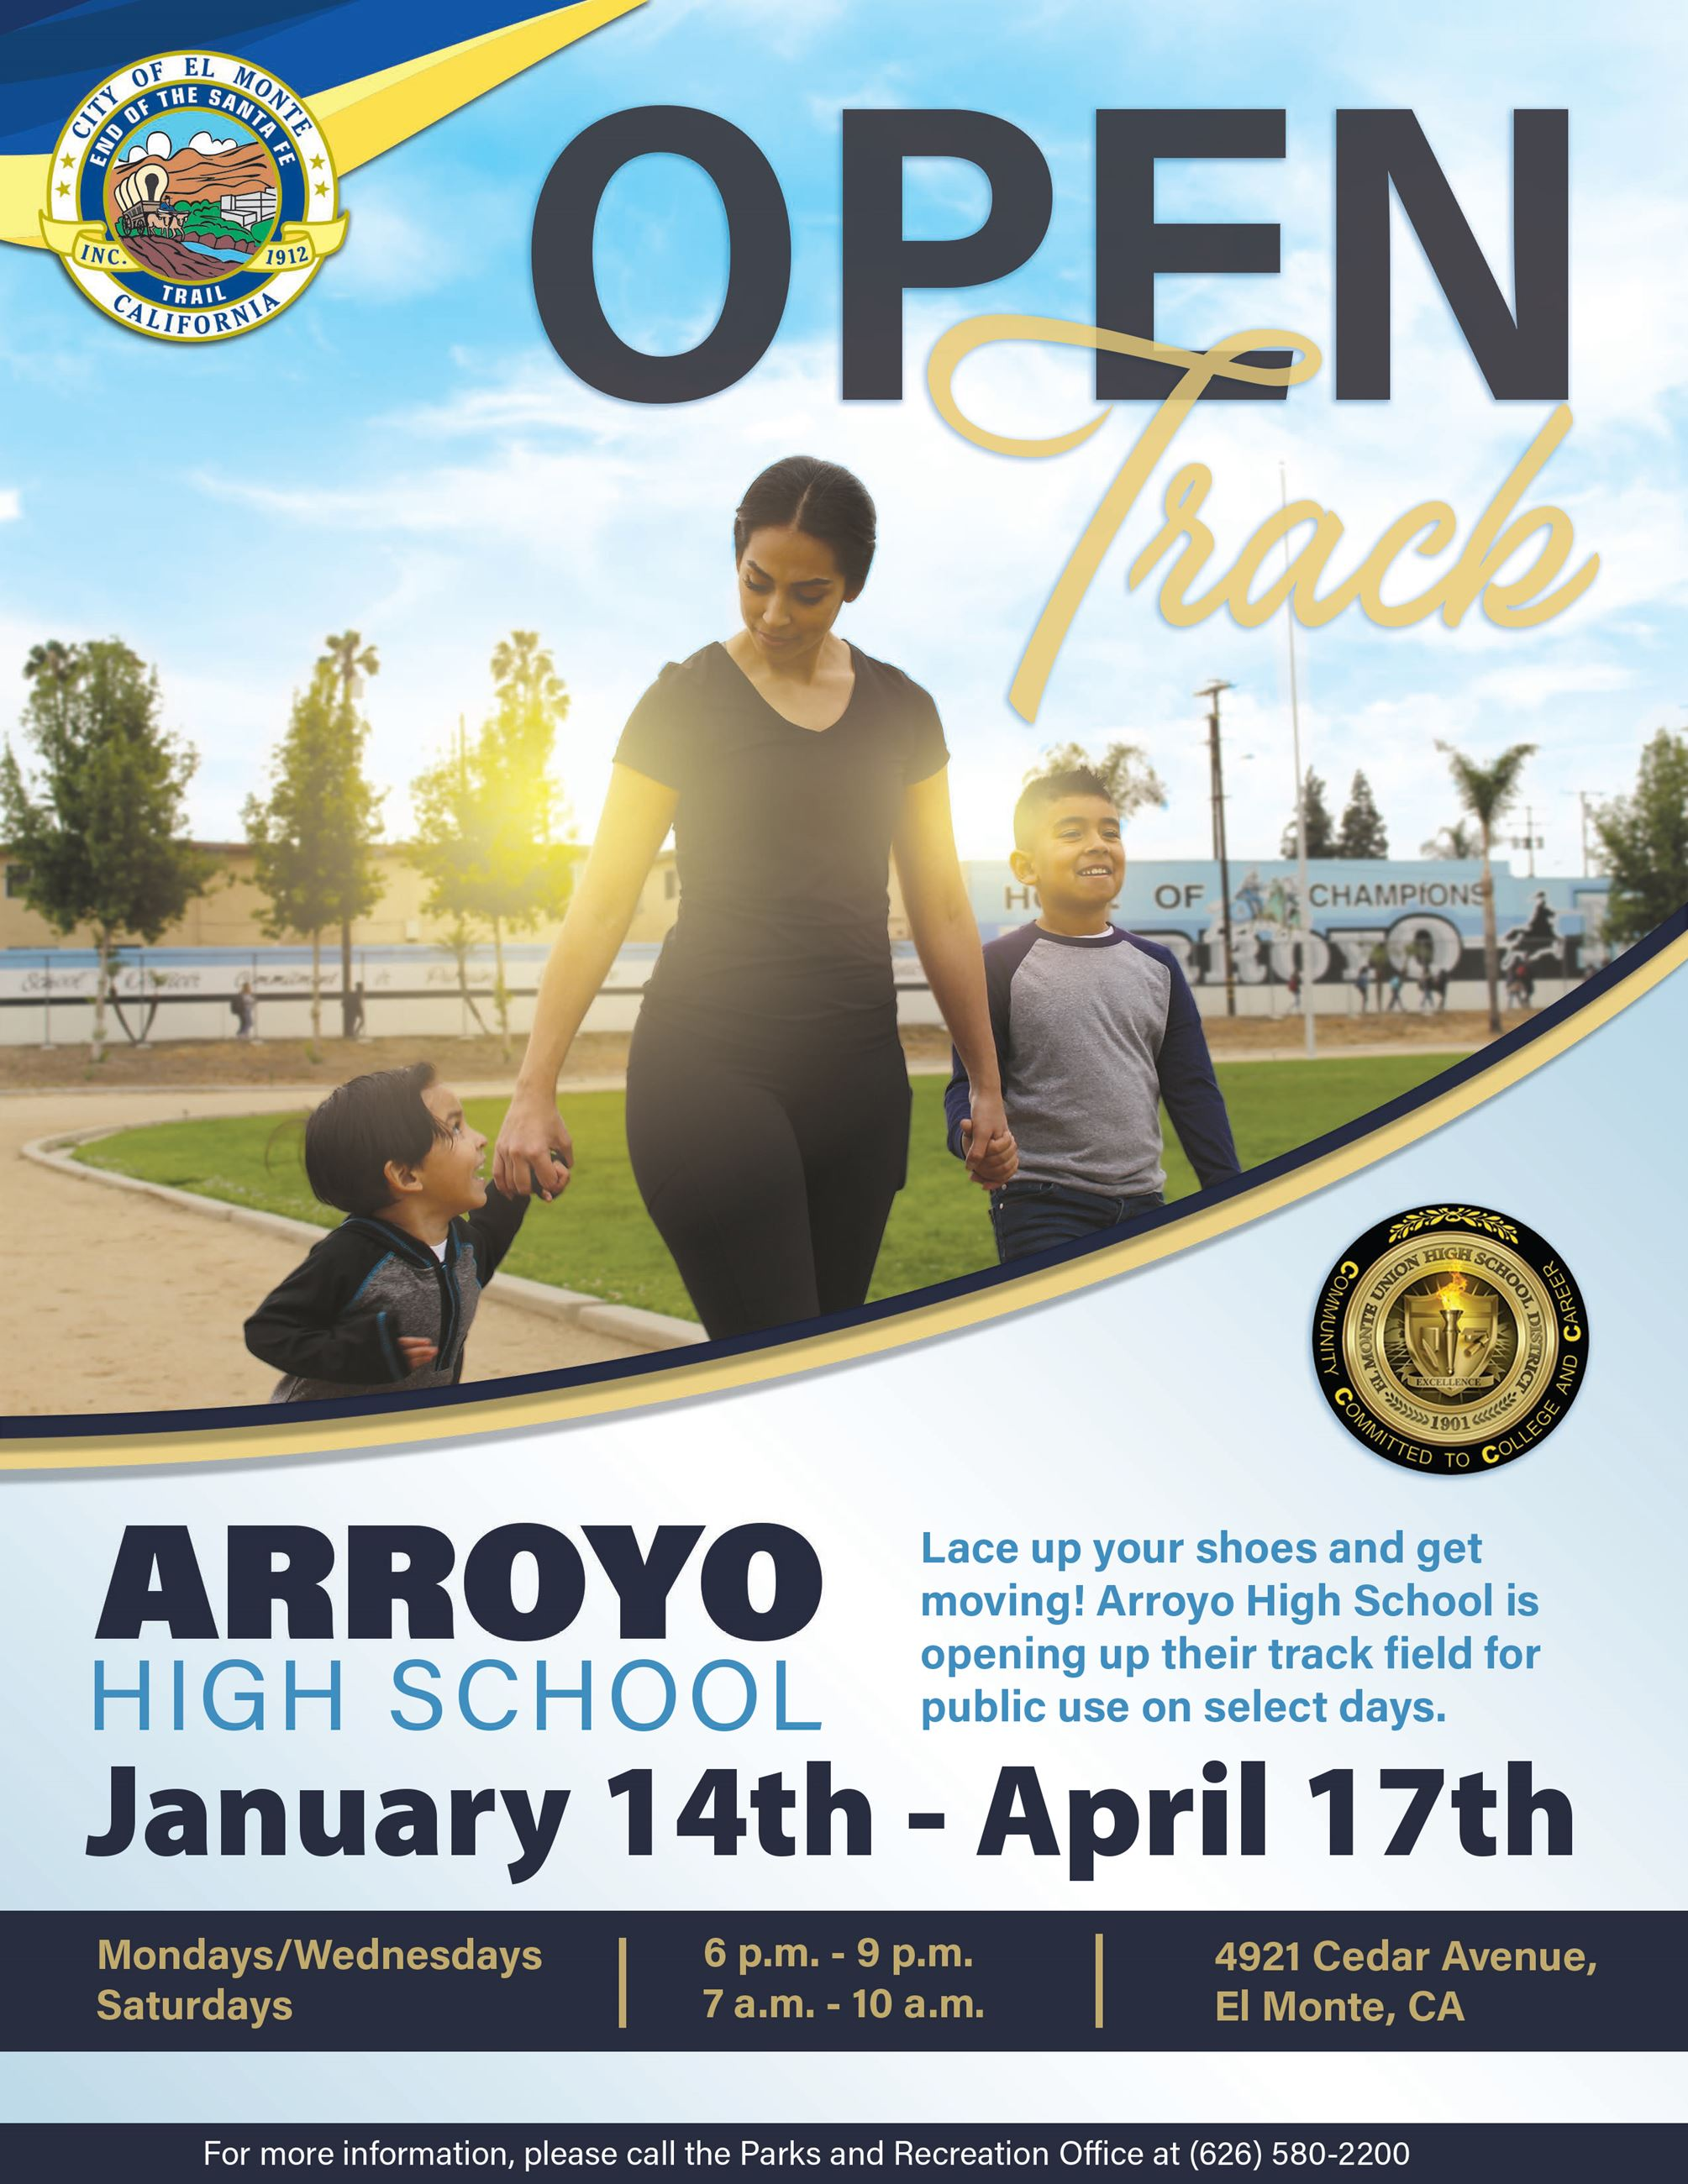 Open_Track_Flyer_012319_A